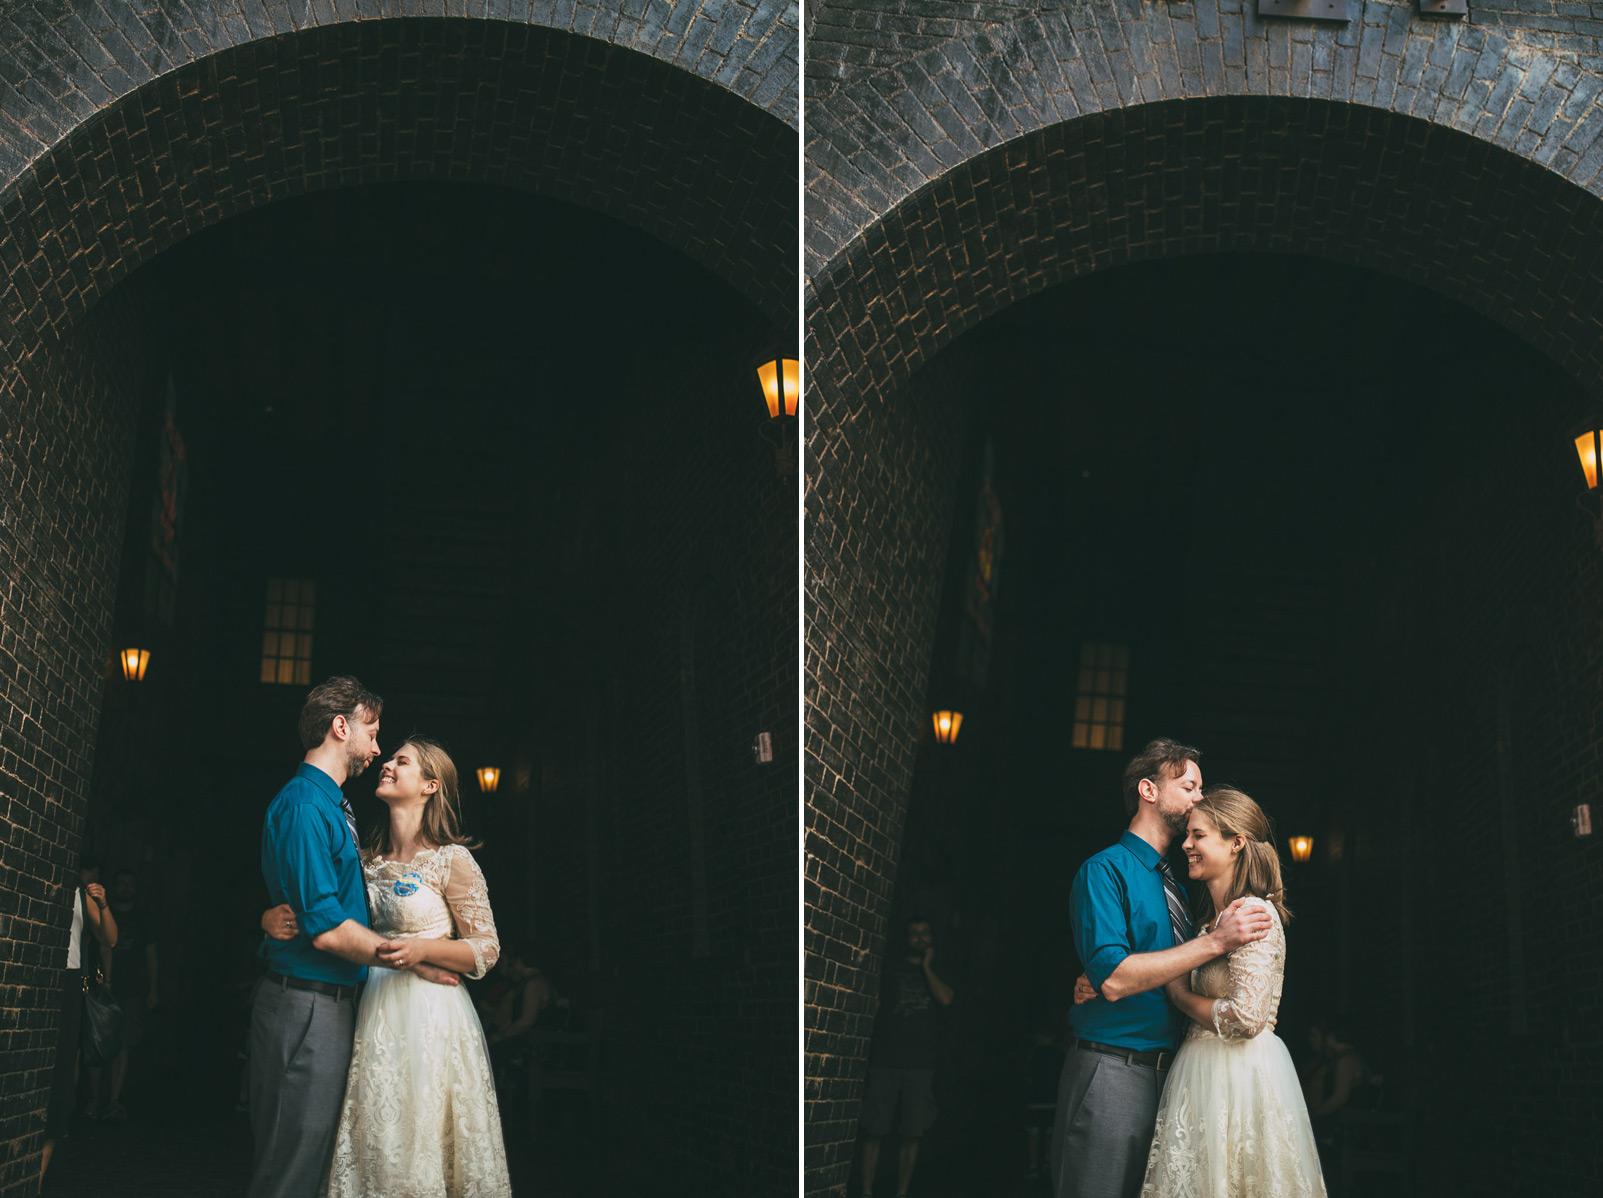 newlyweds hugging laughing under knockturn alley arch